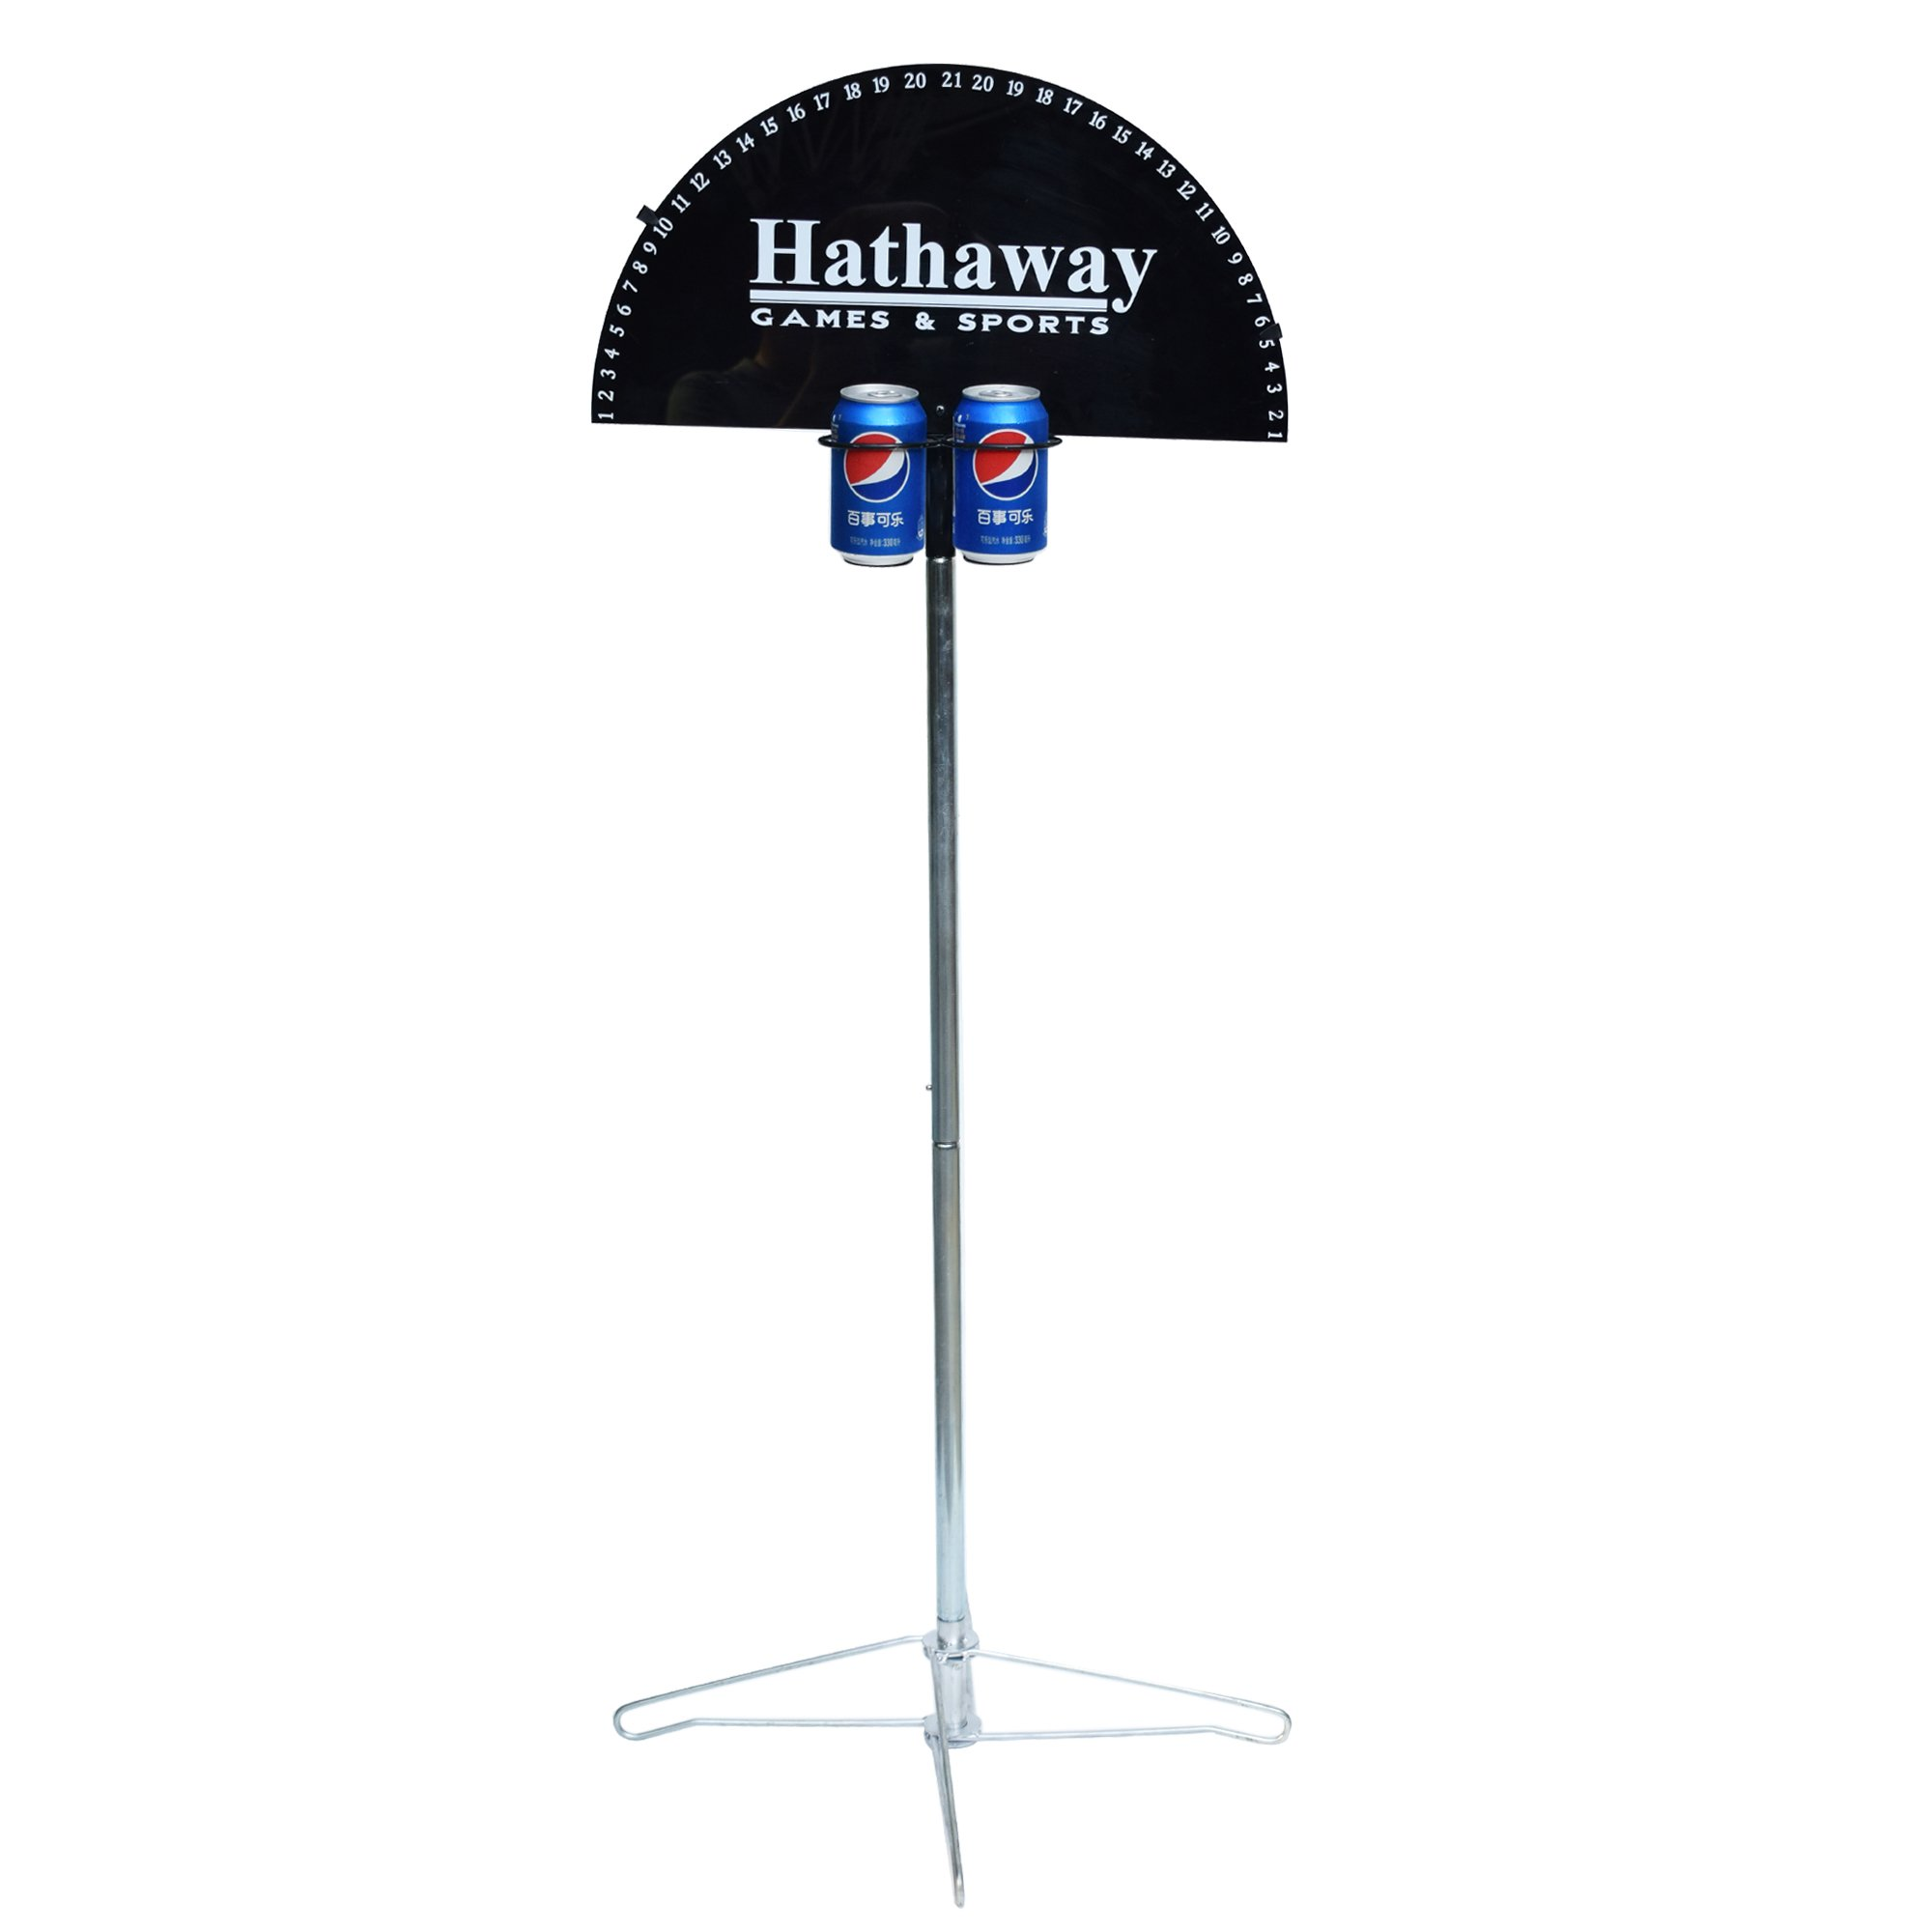 Hathaway Quickscore Outdoor Game Scorer for Yard Games, Black, 21'' L x 21'' W x 47'' H